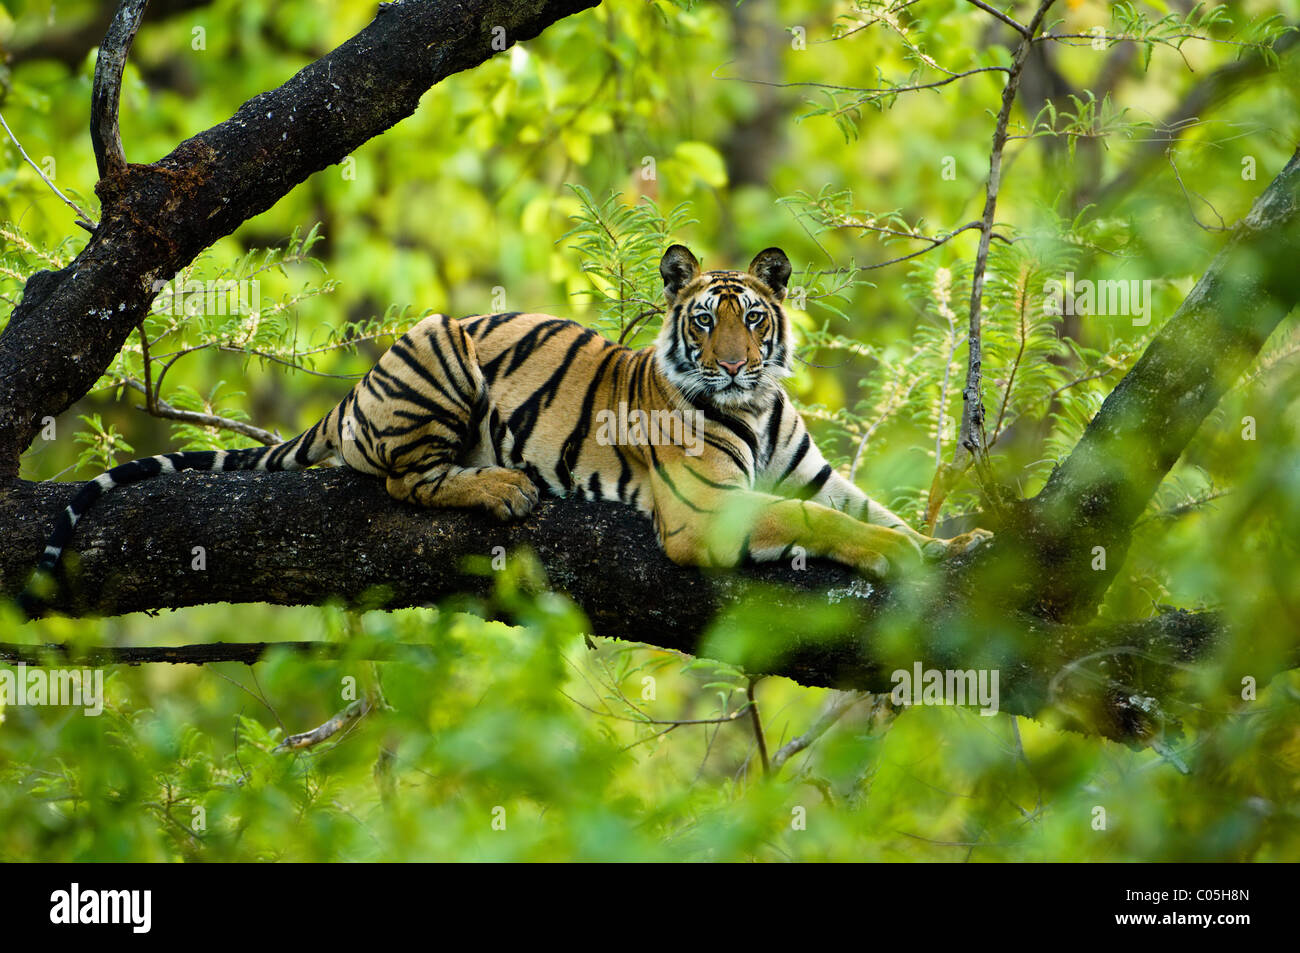 Adolescent male Bengal Tiger (around 15 months) resting up a tree. Bandhavgarh NP, Madhya Pradesh, India. - Stock Image